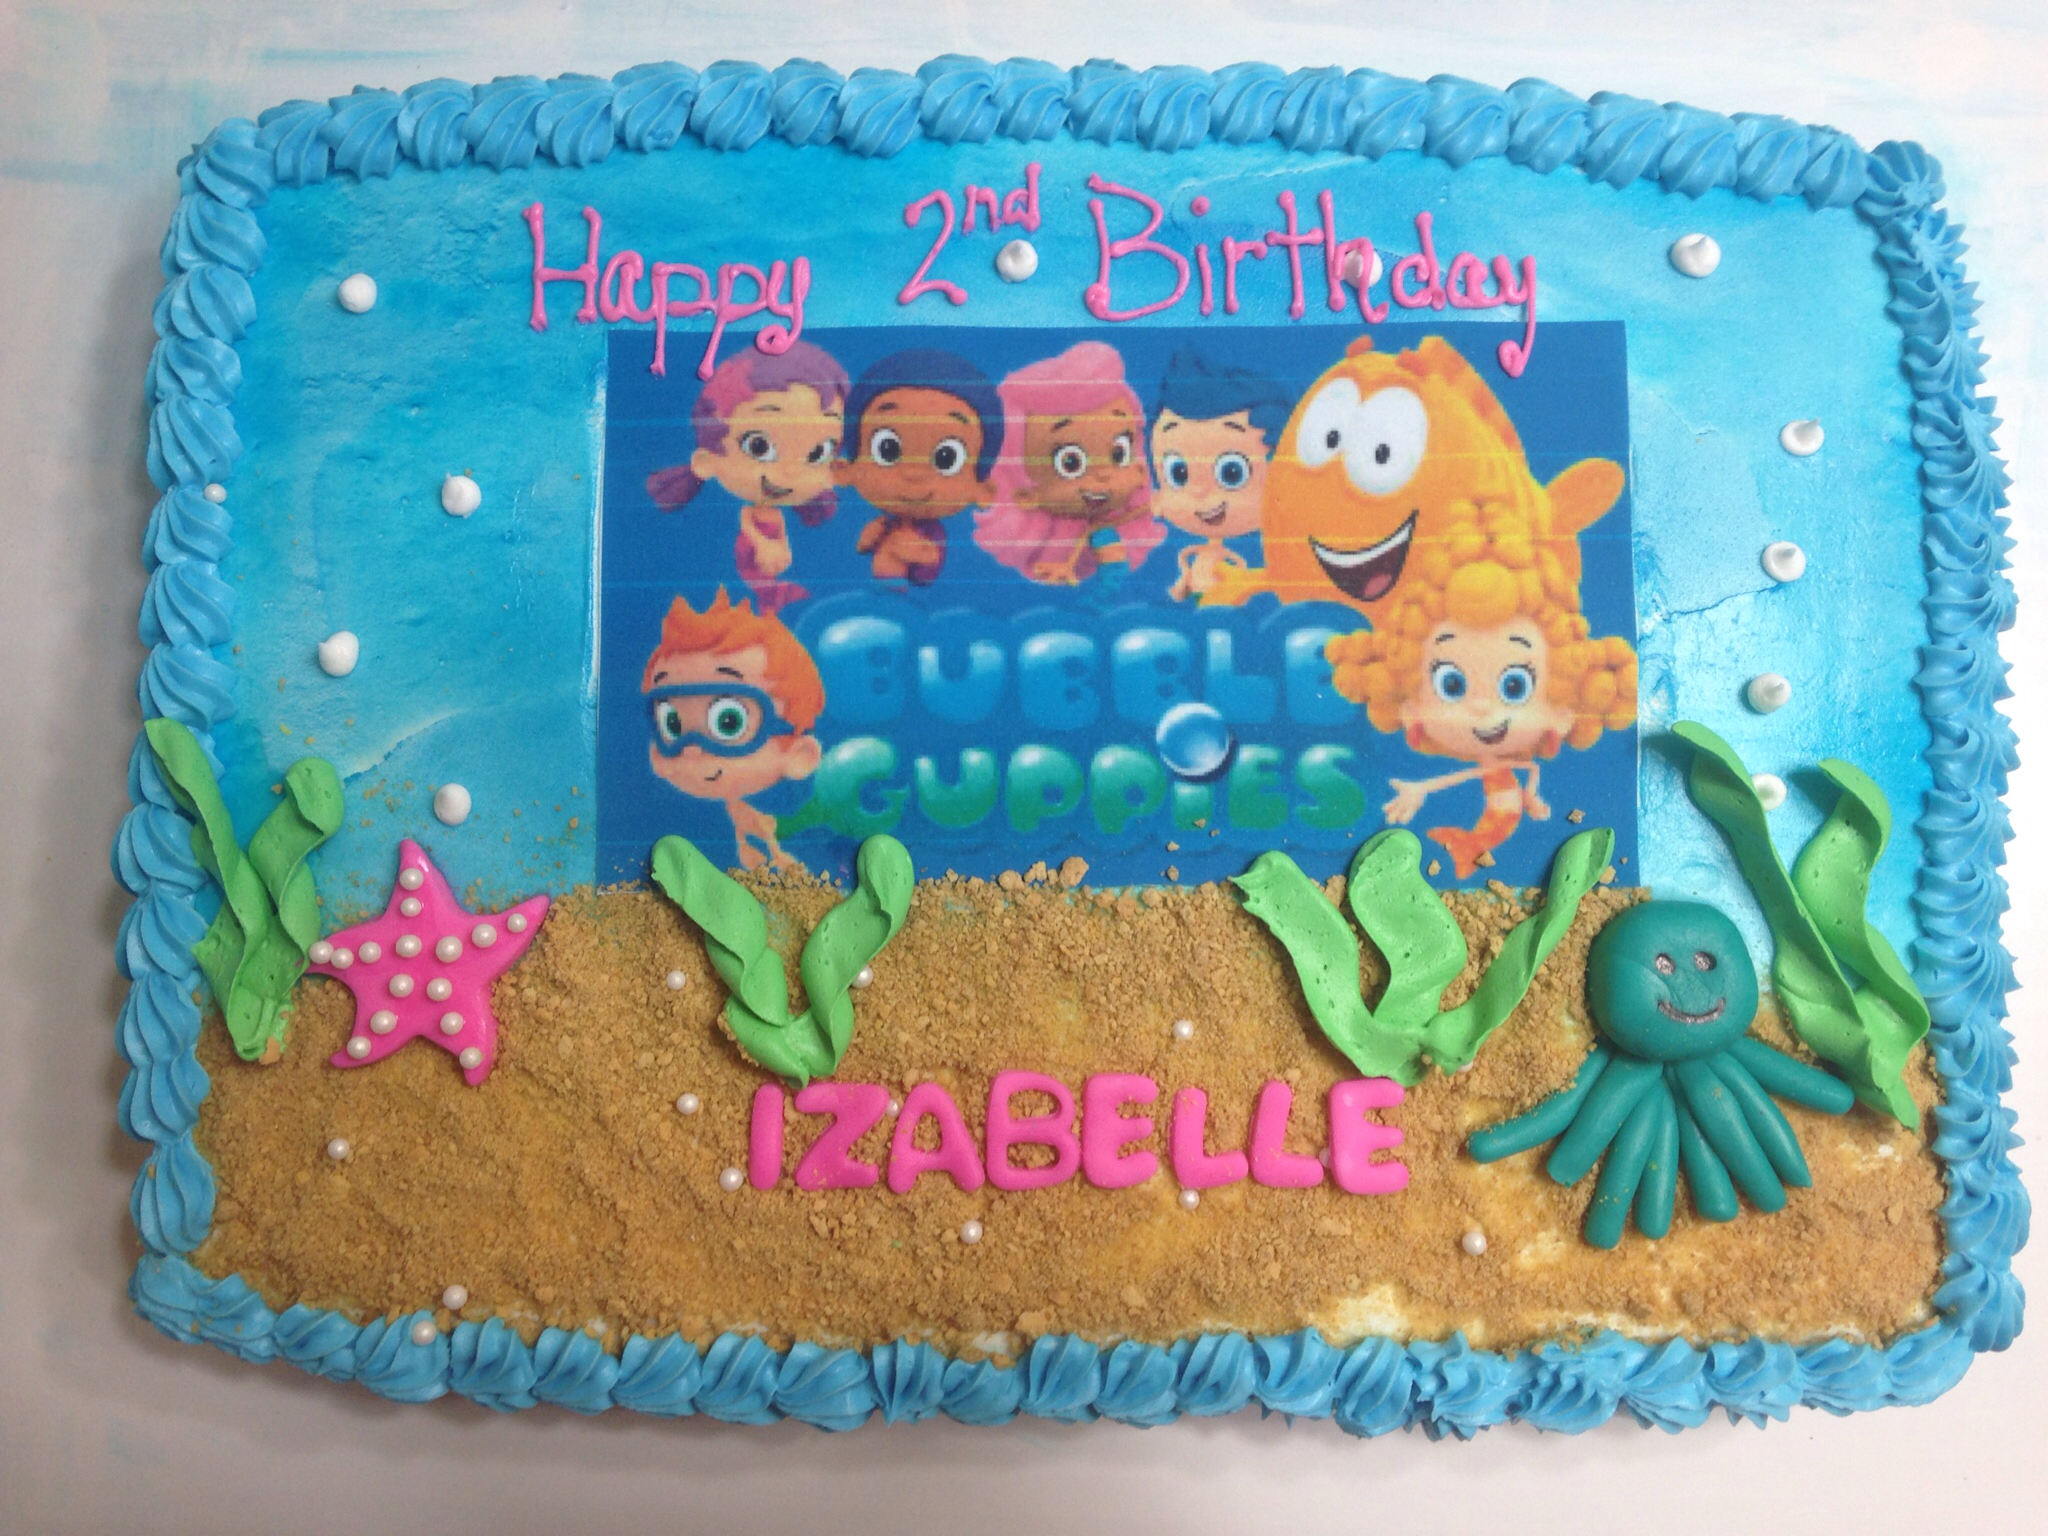 Pleasant 7 Cakes Guppy Pinterest Birthdays Forbubble Photo Bubble Guppies Birthday Cards Printable Trancafe Filternl